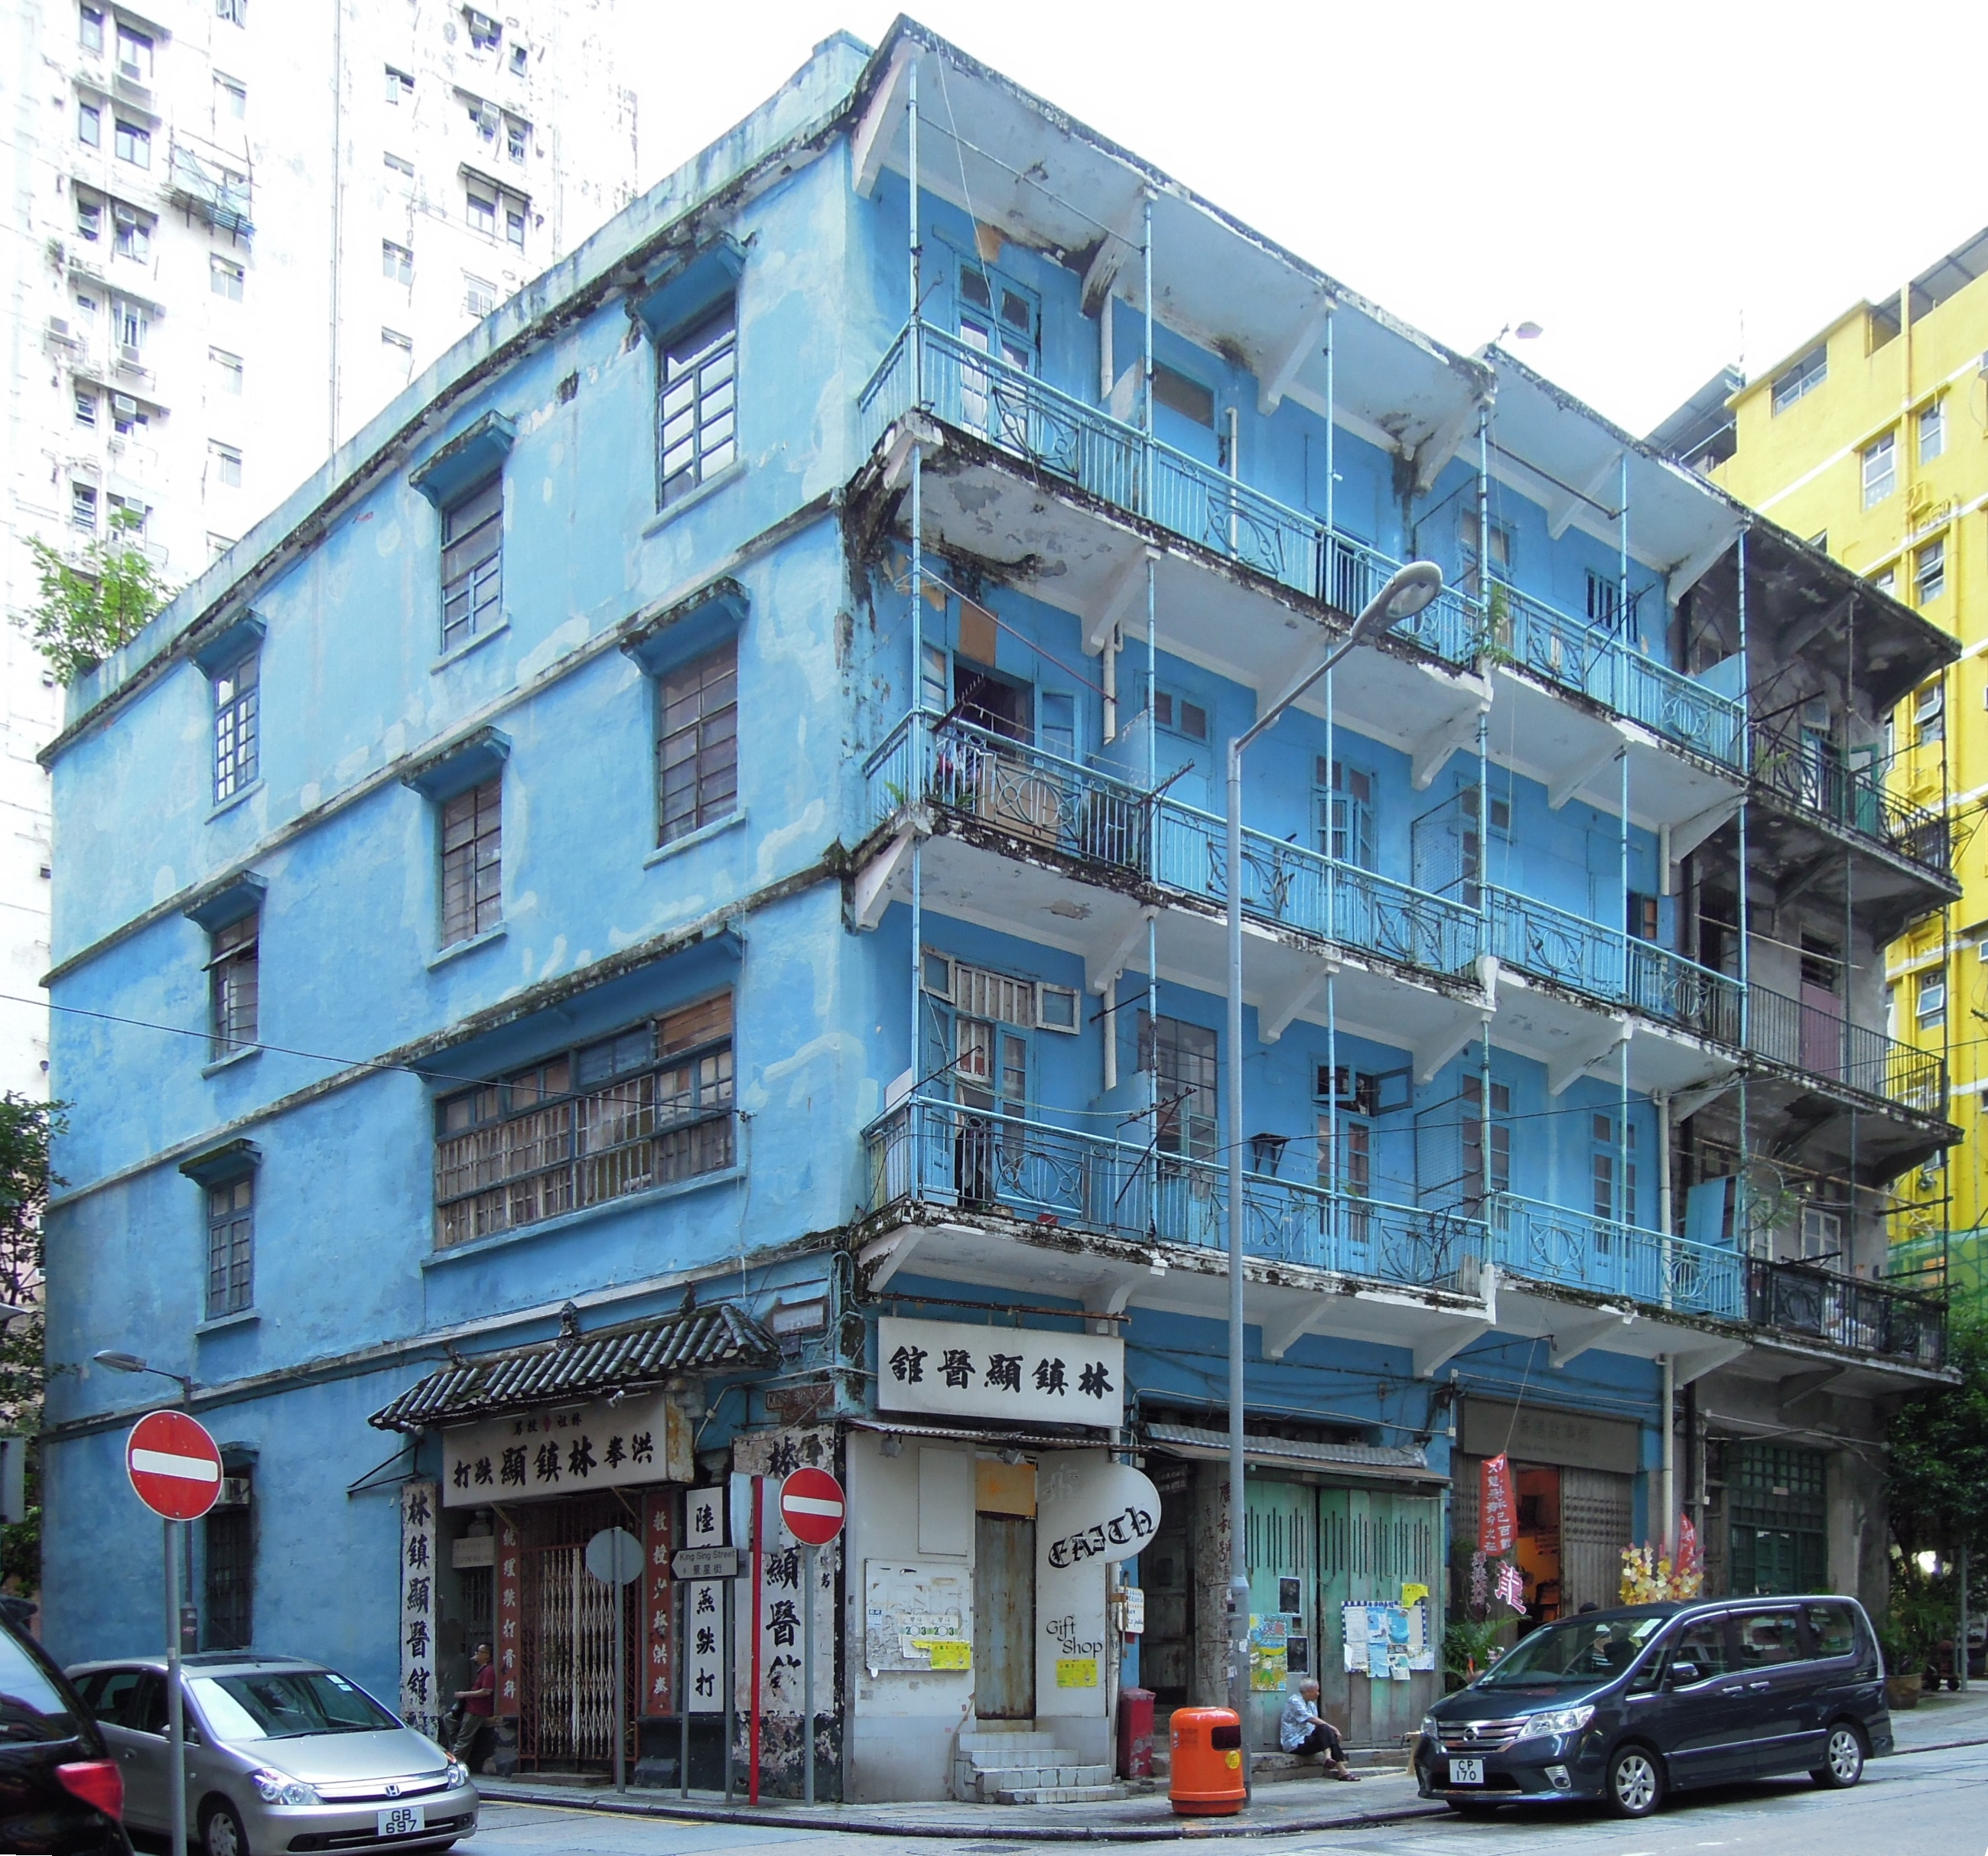 Best Architecture Buildings the best of hong kong architecture: top 10 buildings